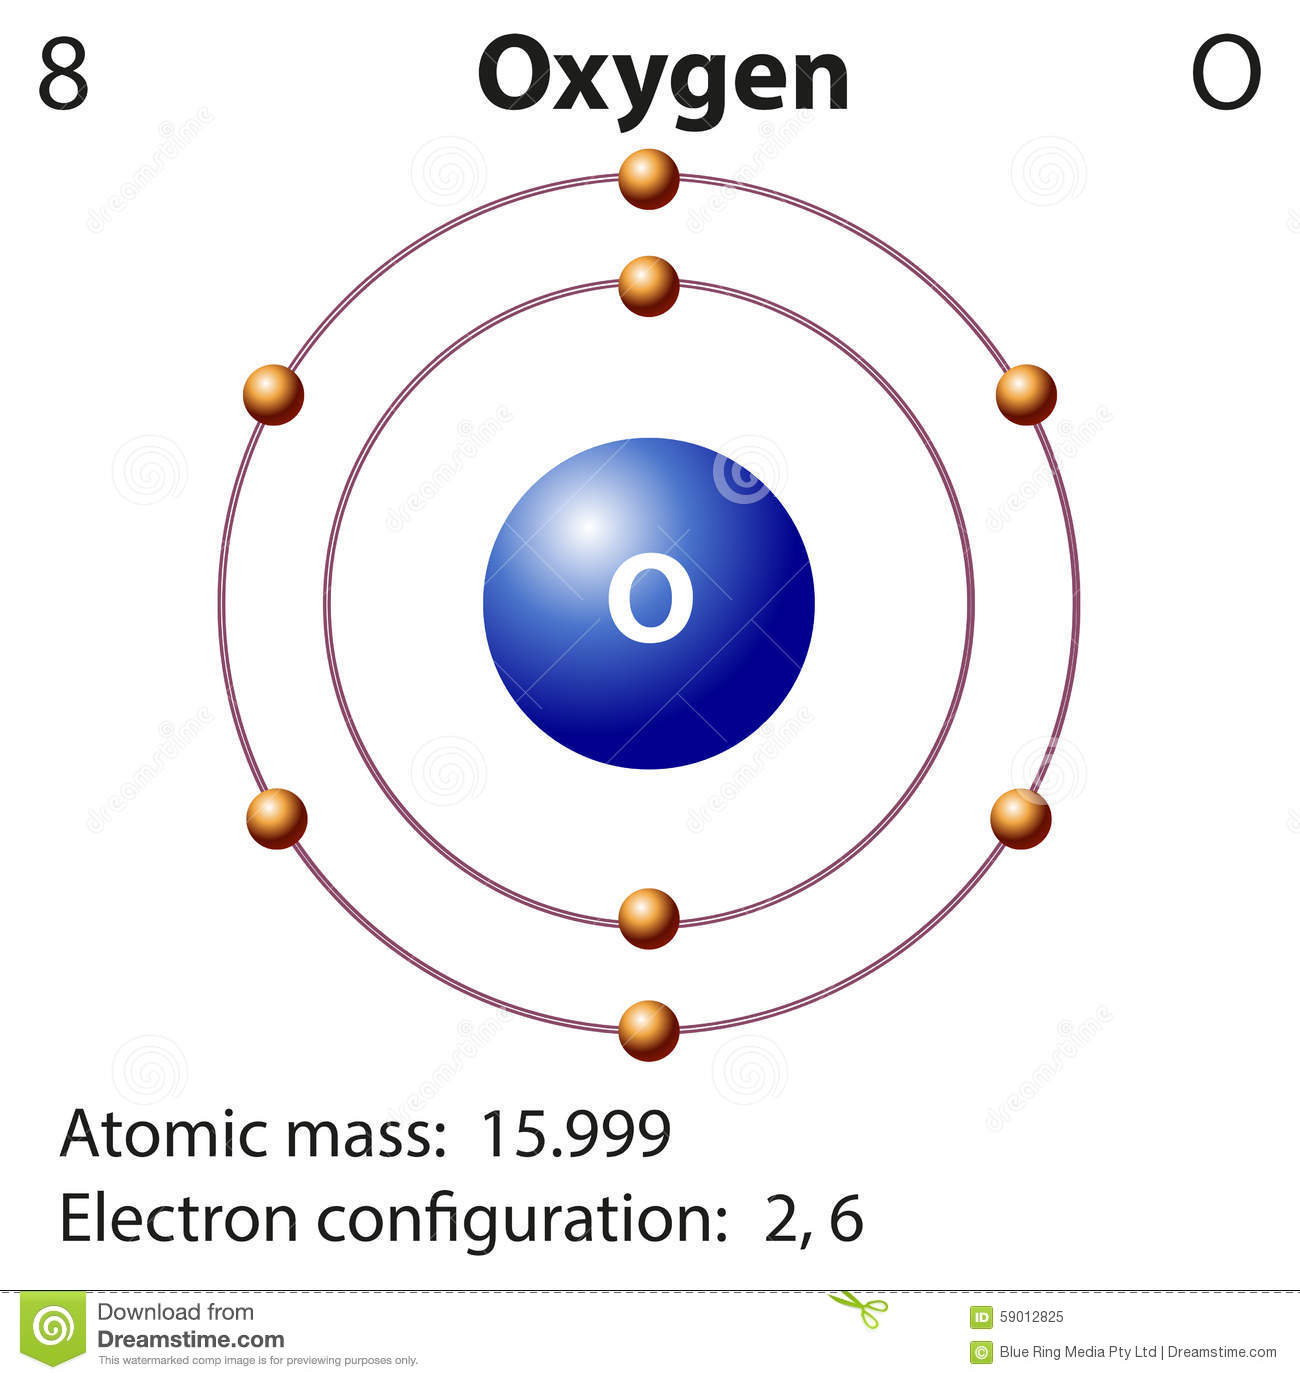 Diagram Representation Of The Element Oxygen Stock Vector - Image ...